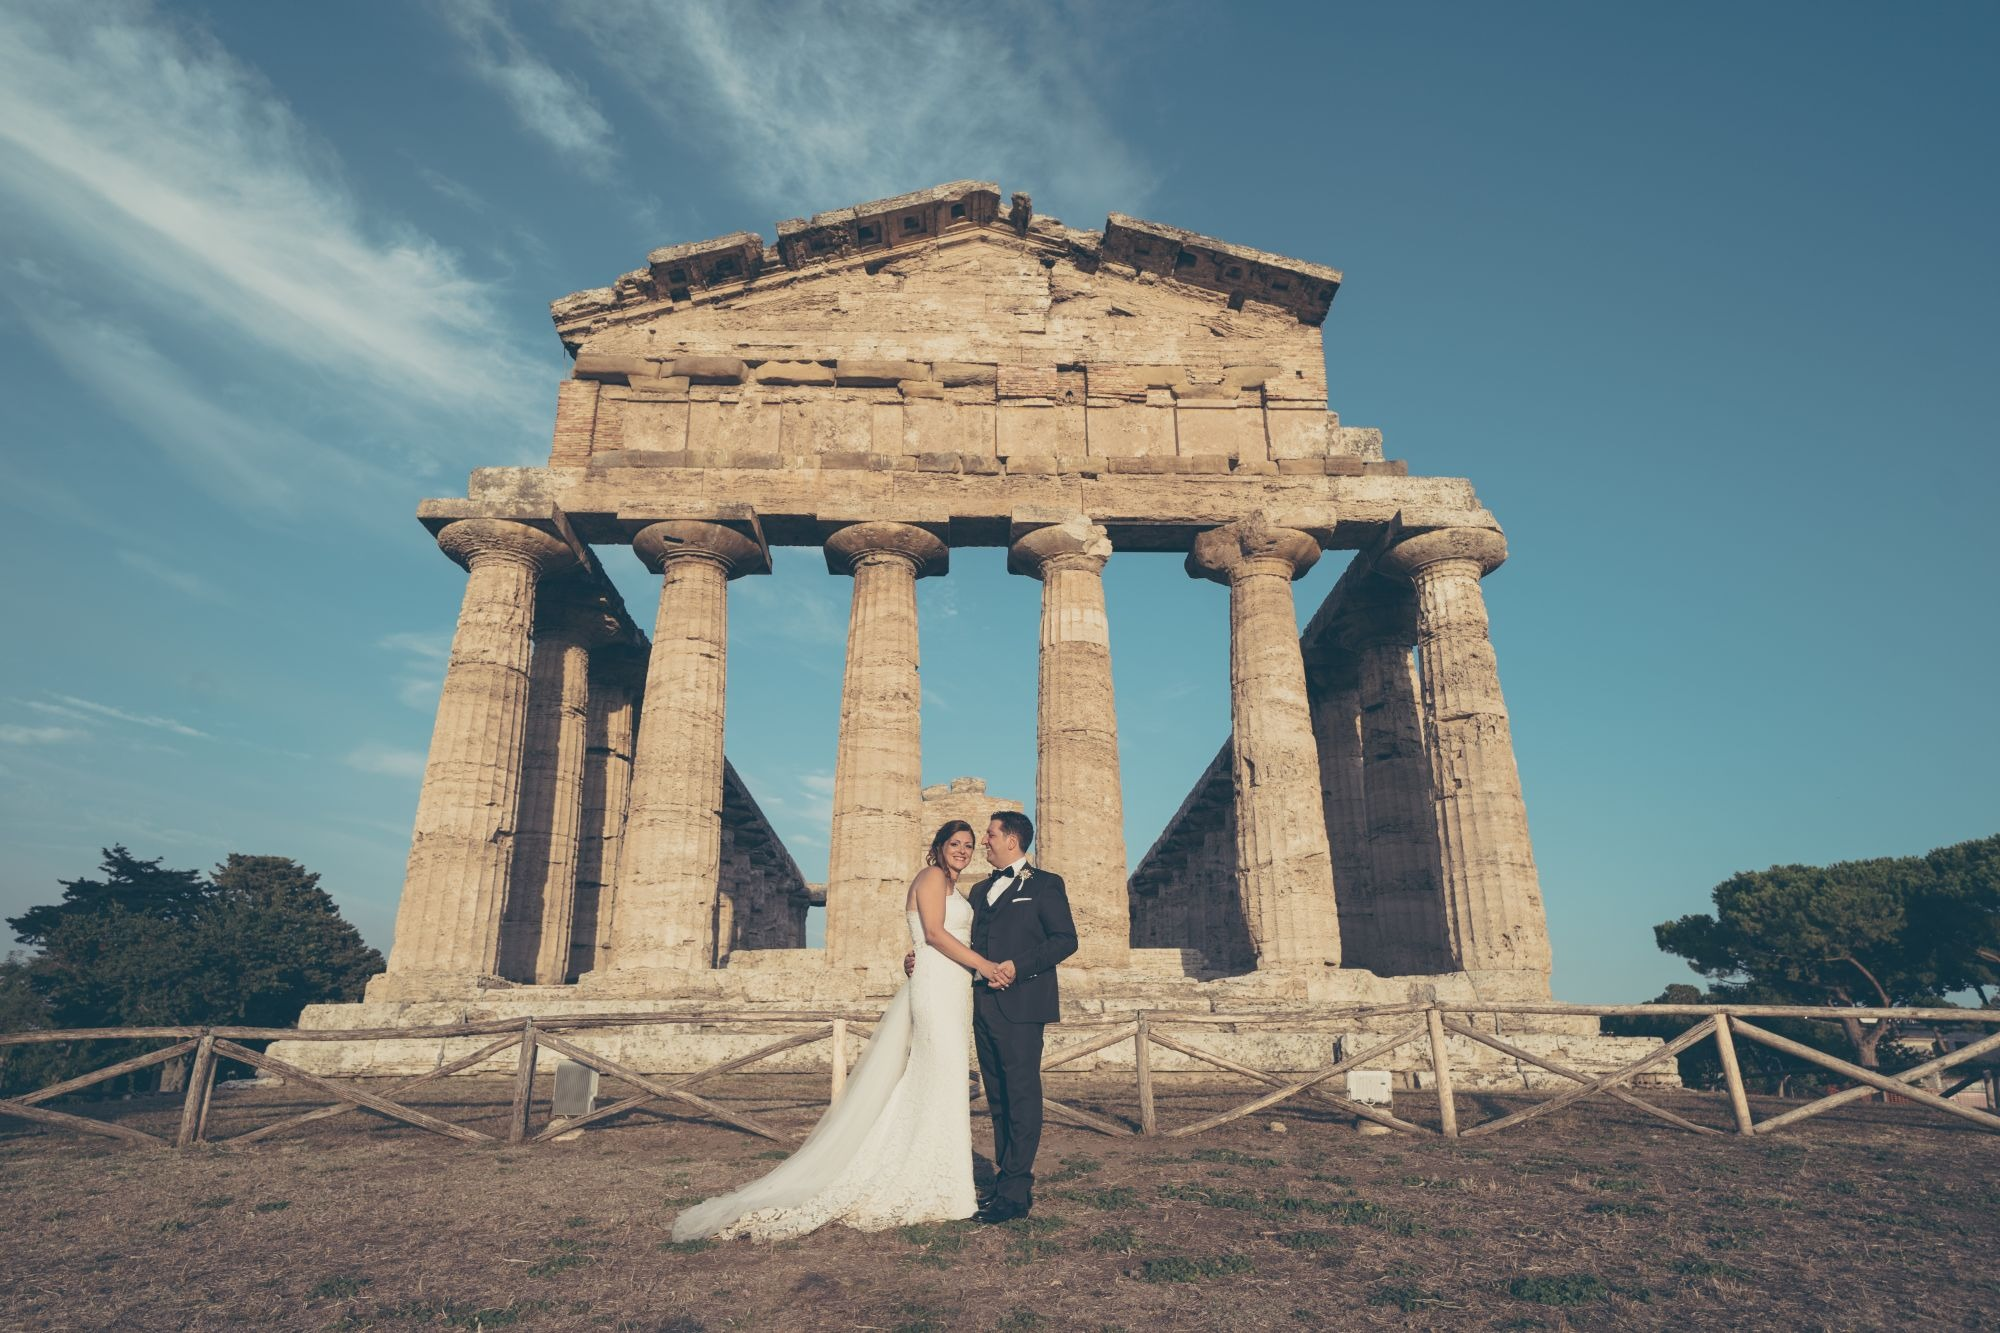 ROMANTIC WEDDING AT PAESTUM, ITALY